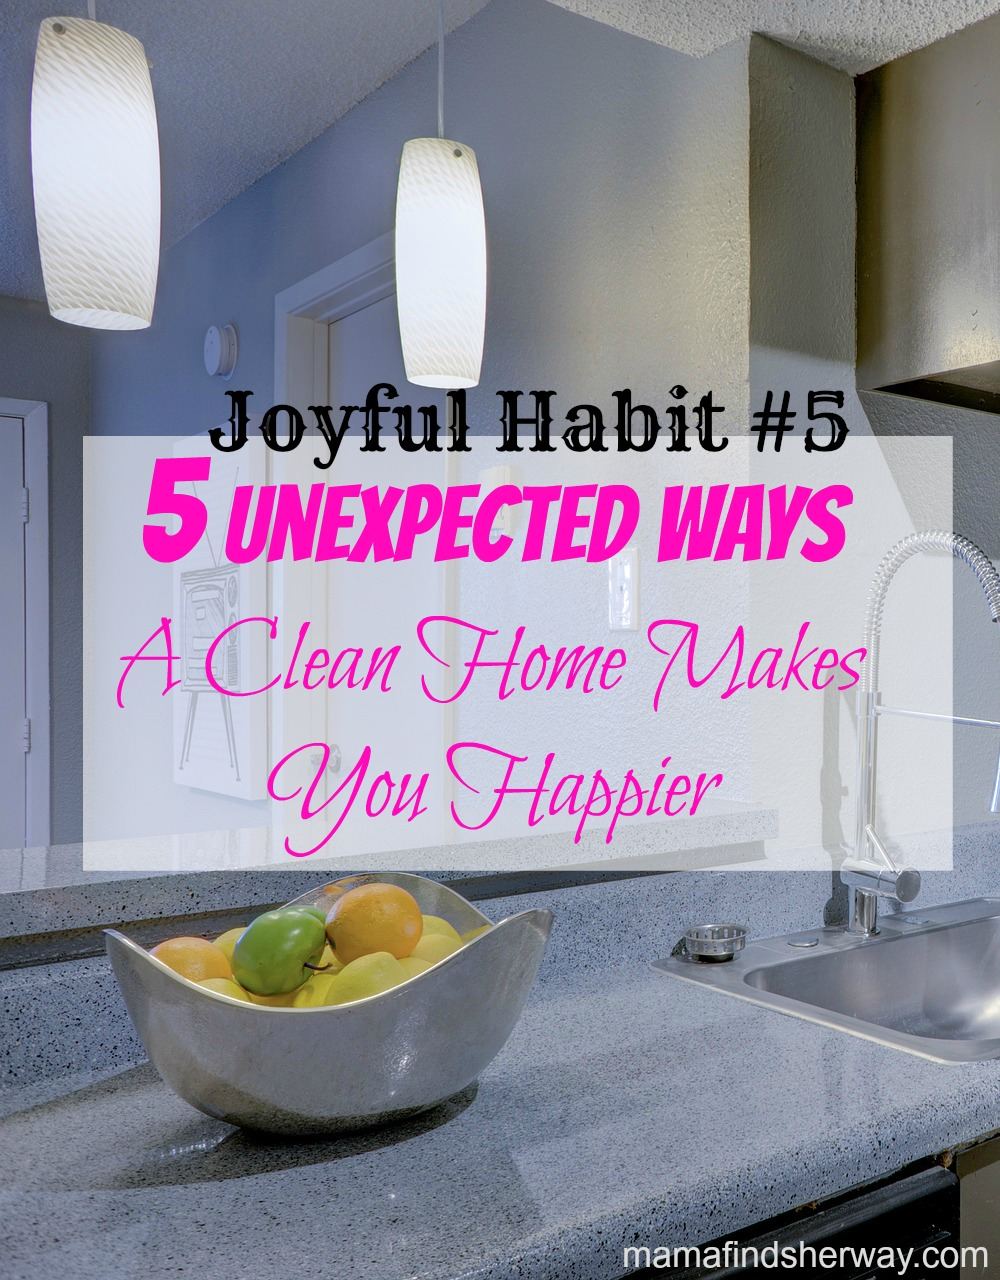 5 Unexpected Ways A Clean Home Makes You Happier